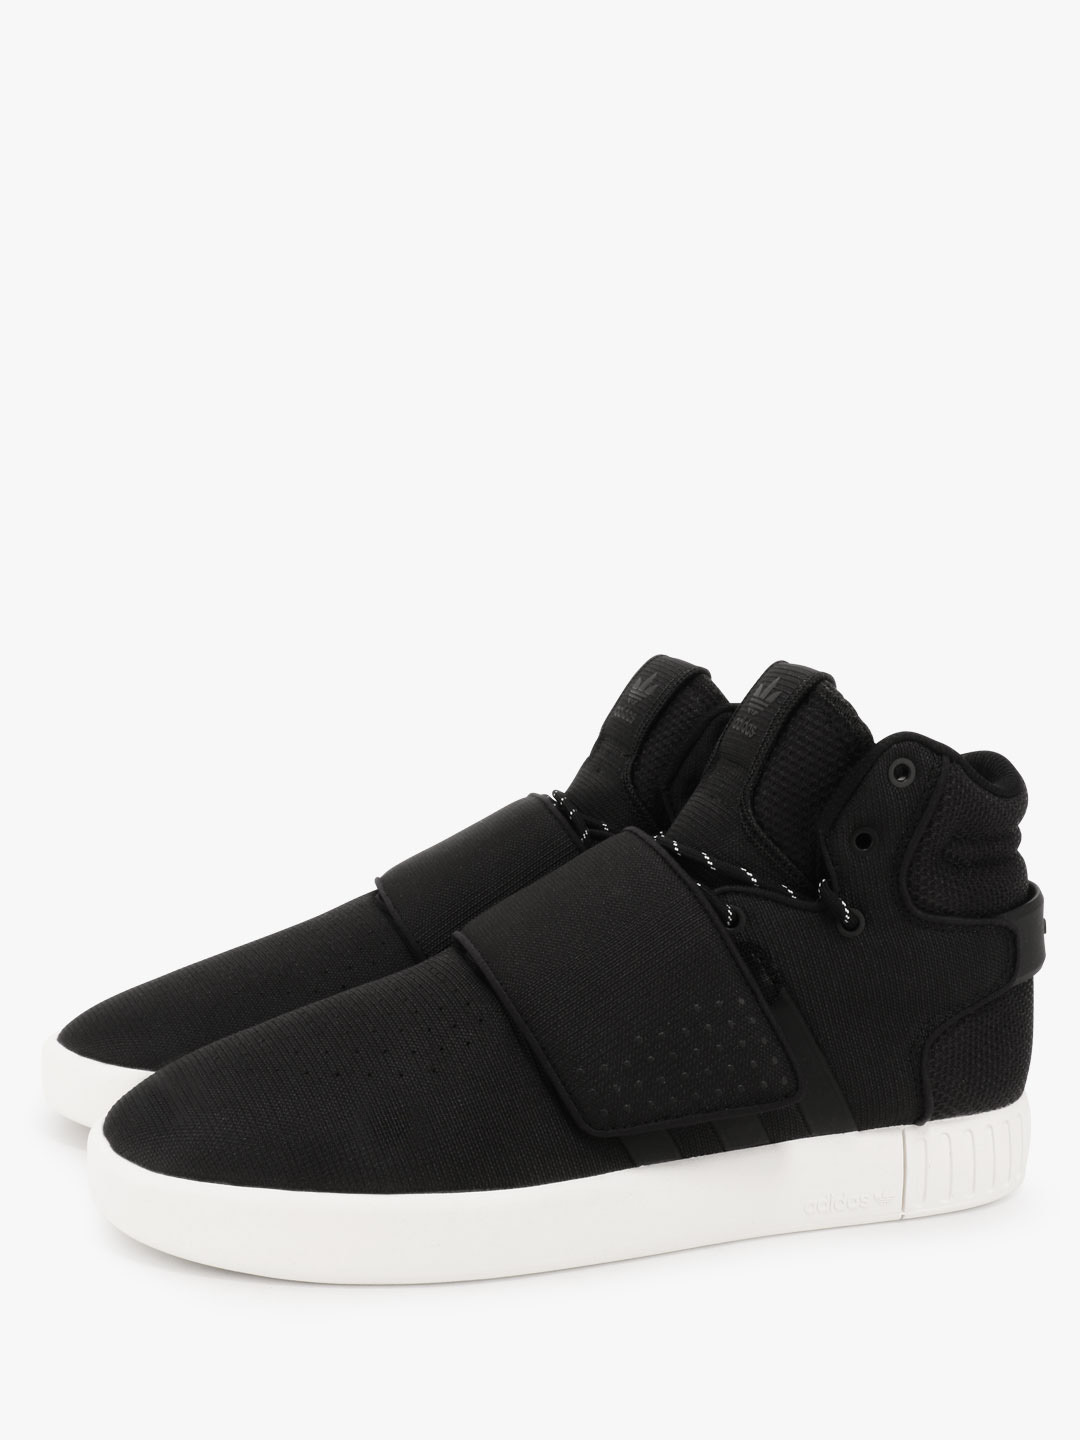 low priced 55859 af089 Buy Adidas Originals Black Tubular Invader Strap Sneakers ...